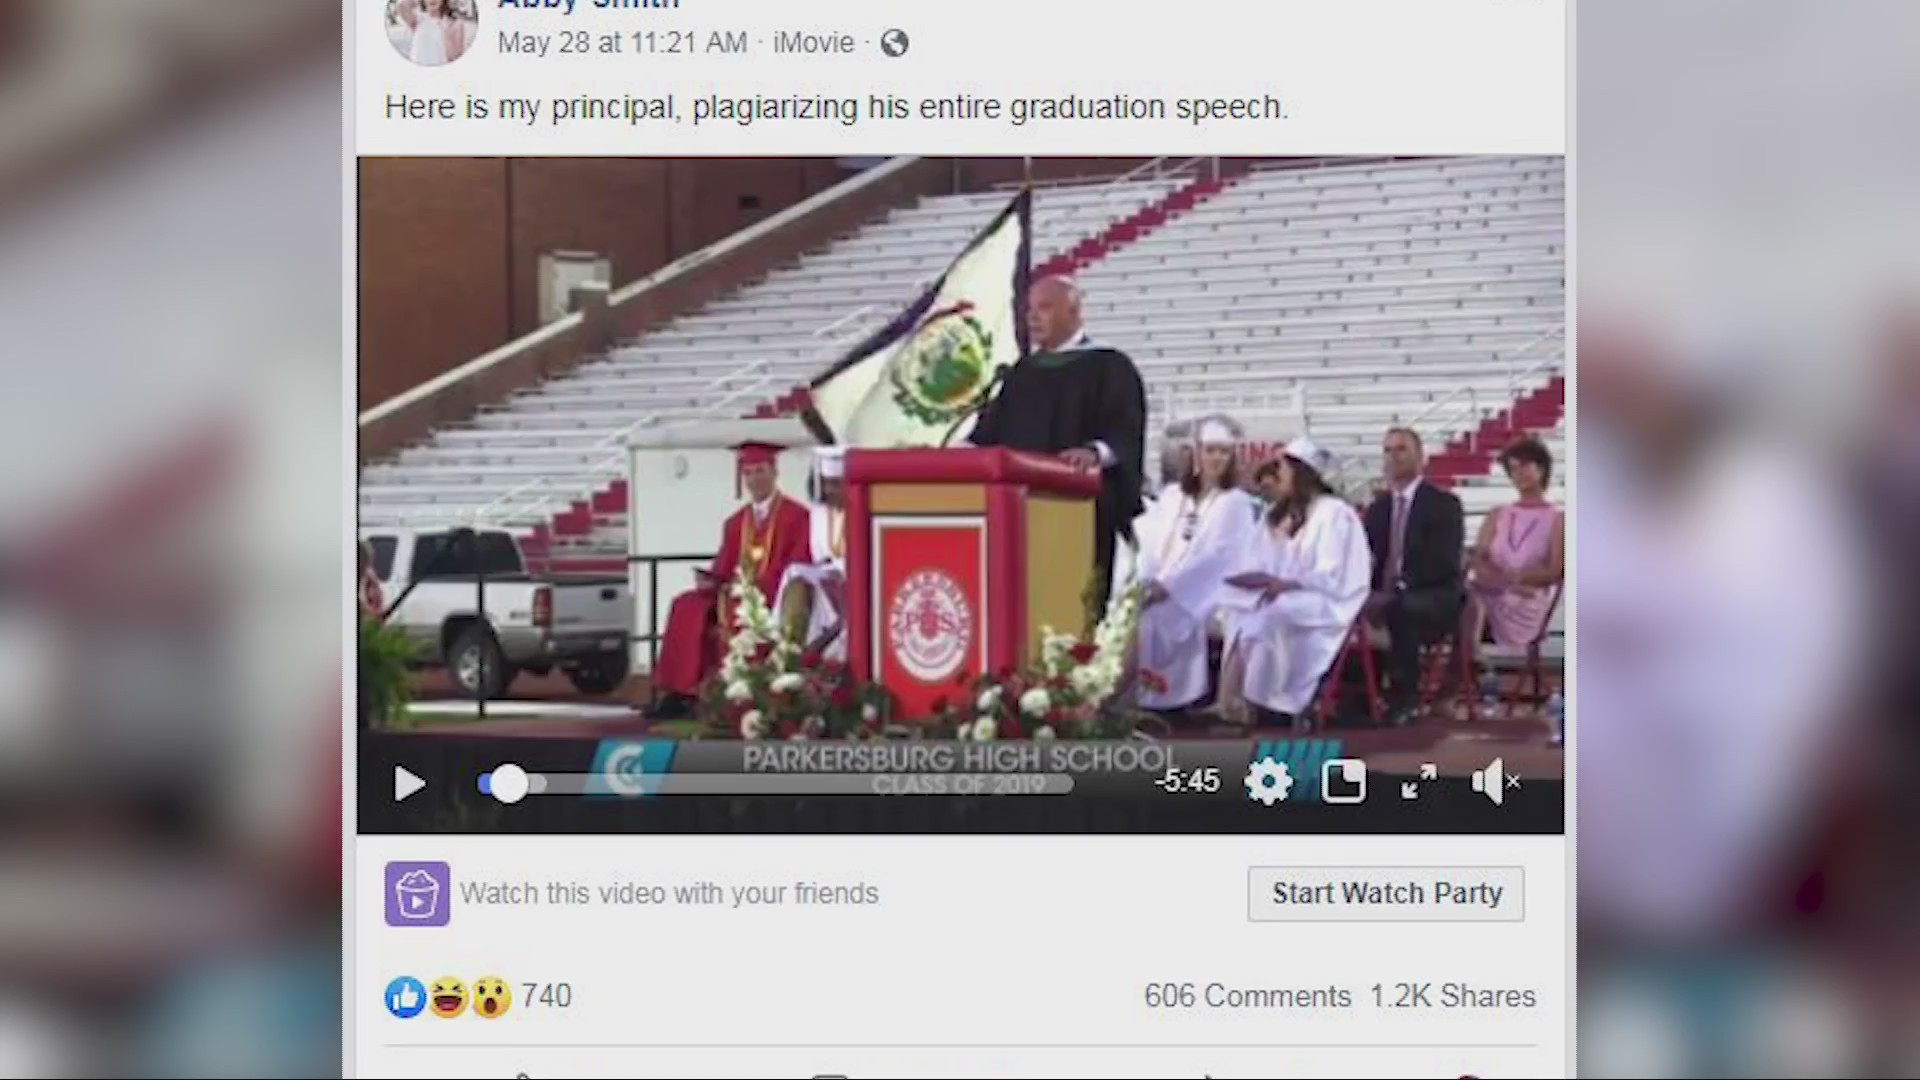 Parkersburg Student Accuses Principal of Plagiarizing Graduation Speech